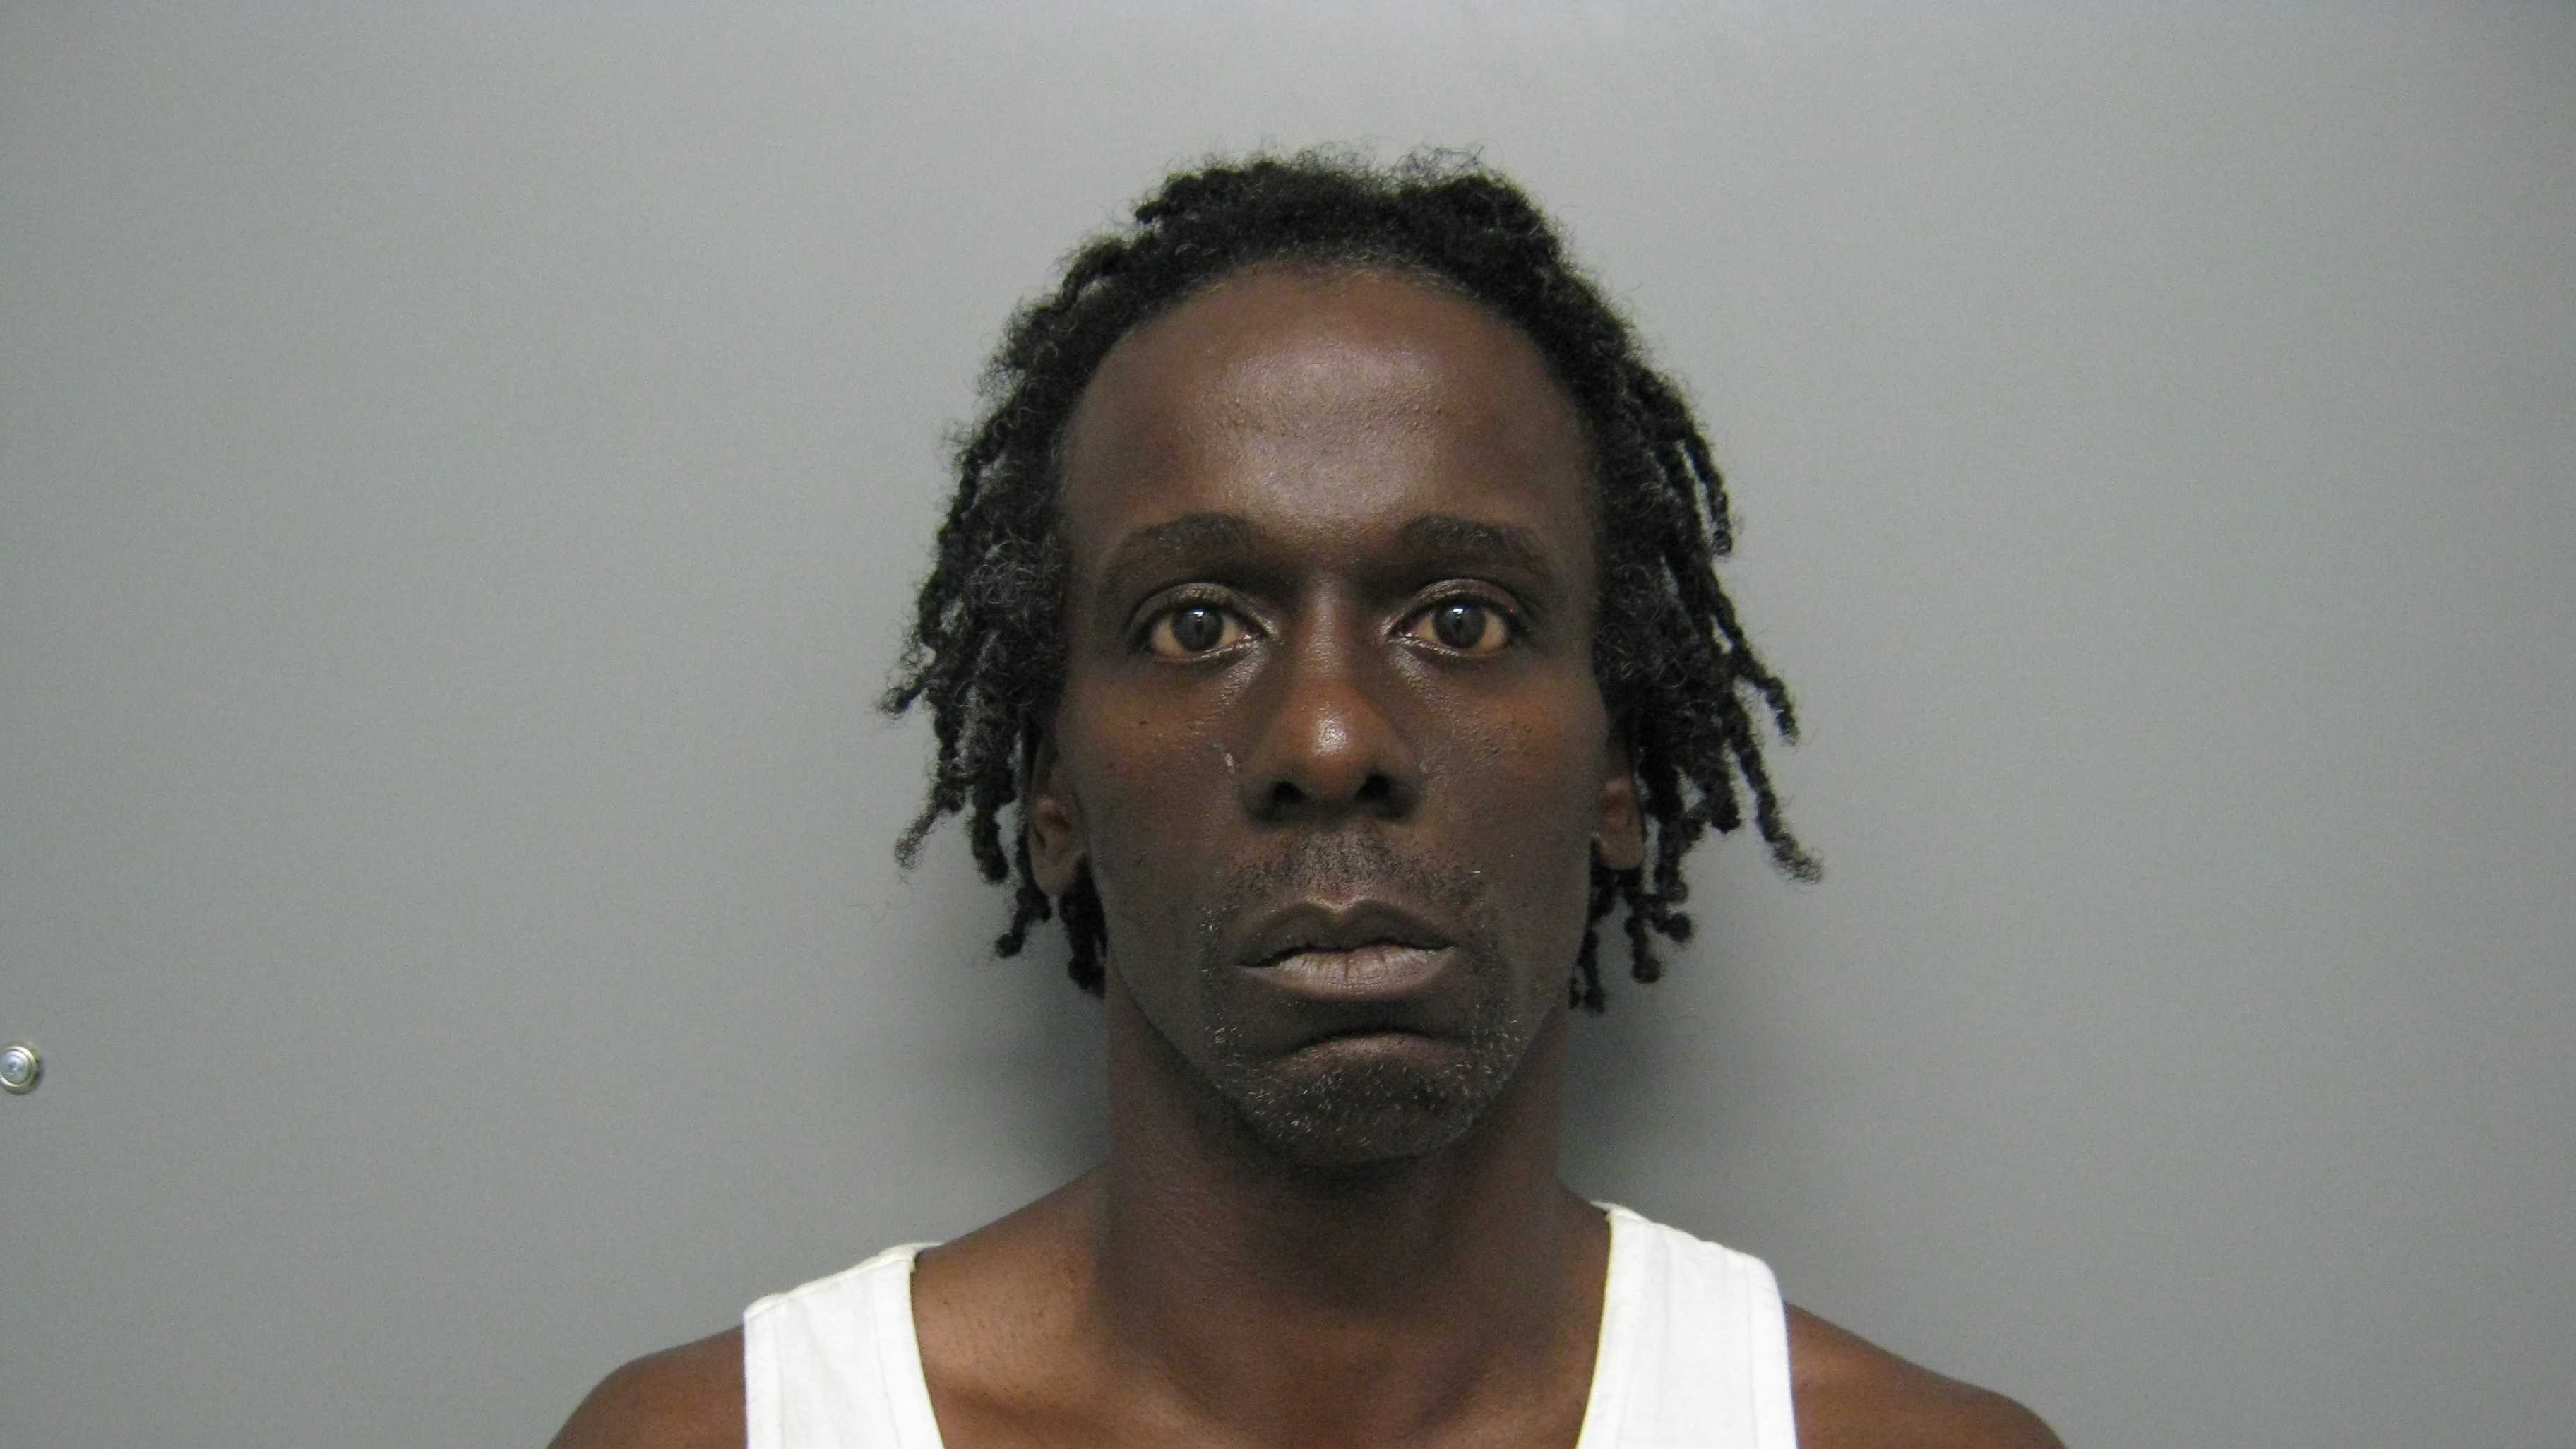 Chaty Register is facing aggravated assault charges related to a stabbing on Monday. Police say Register stabbed another man in the arm at a laundromat in Burlington on Monday.